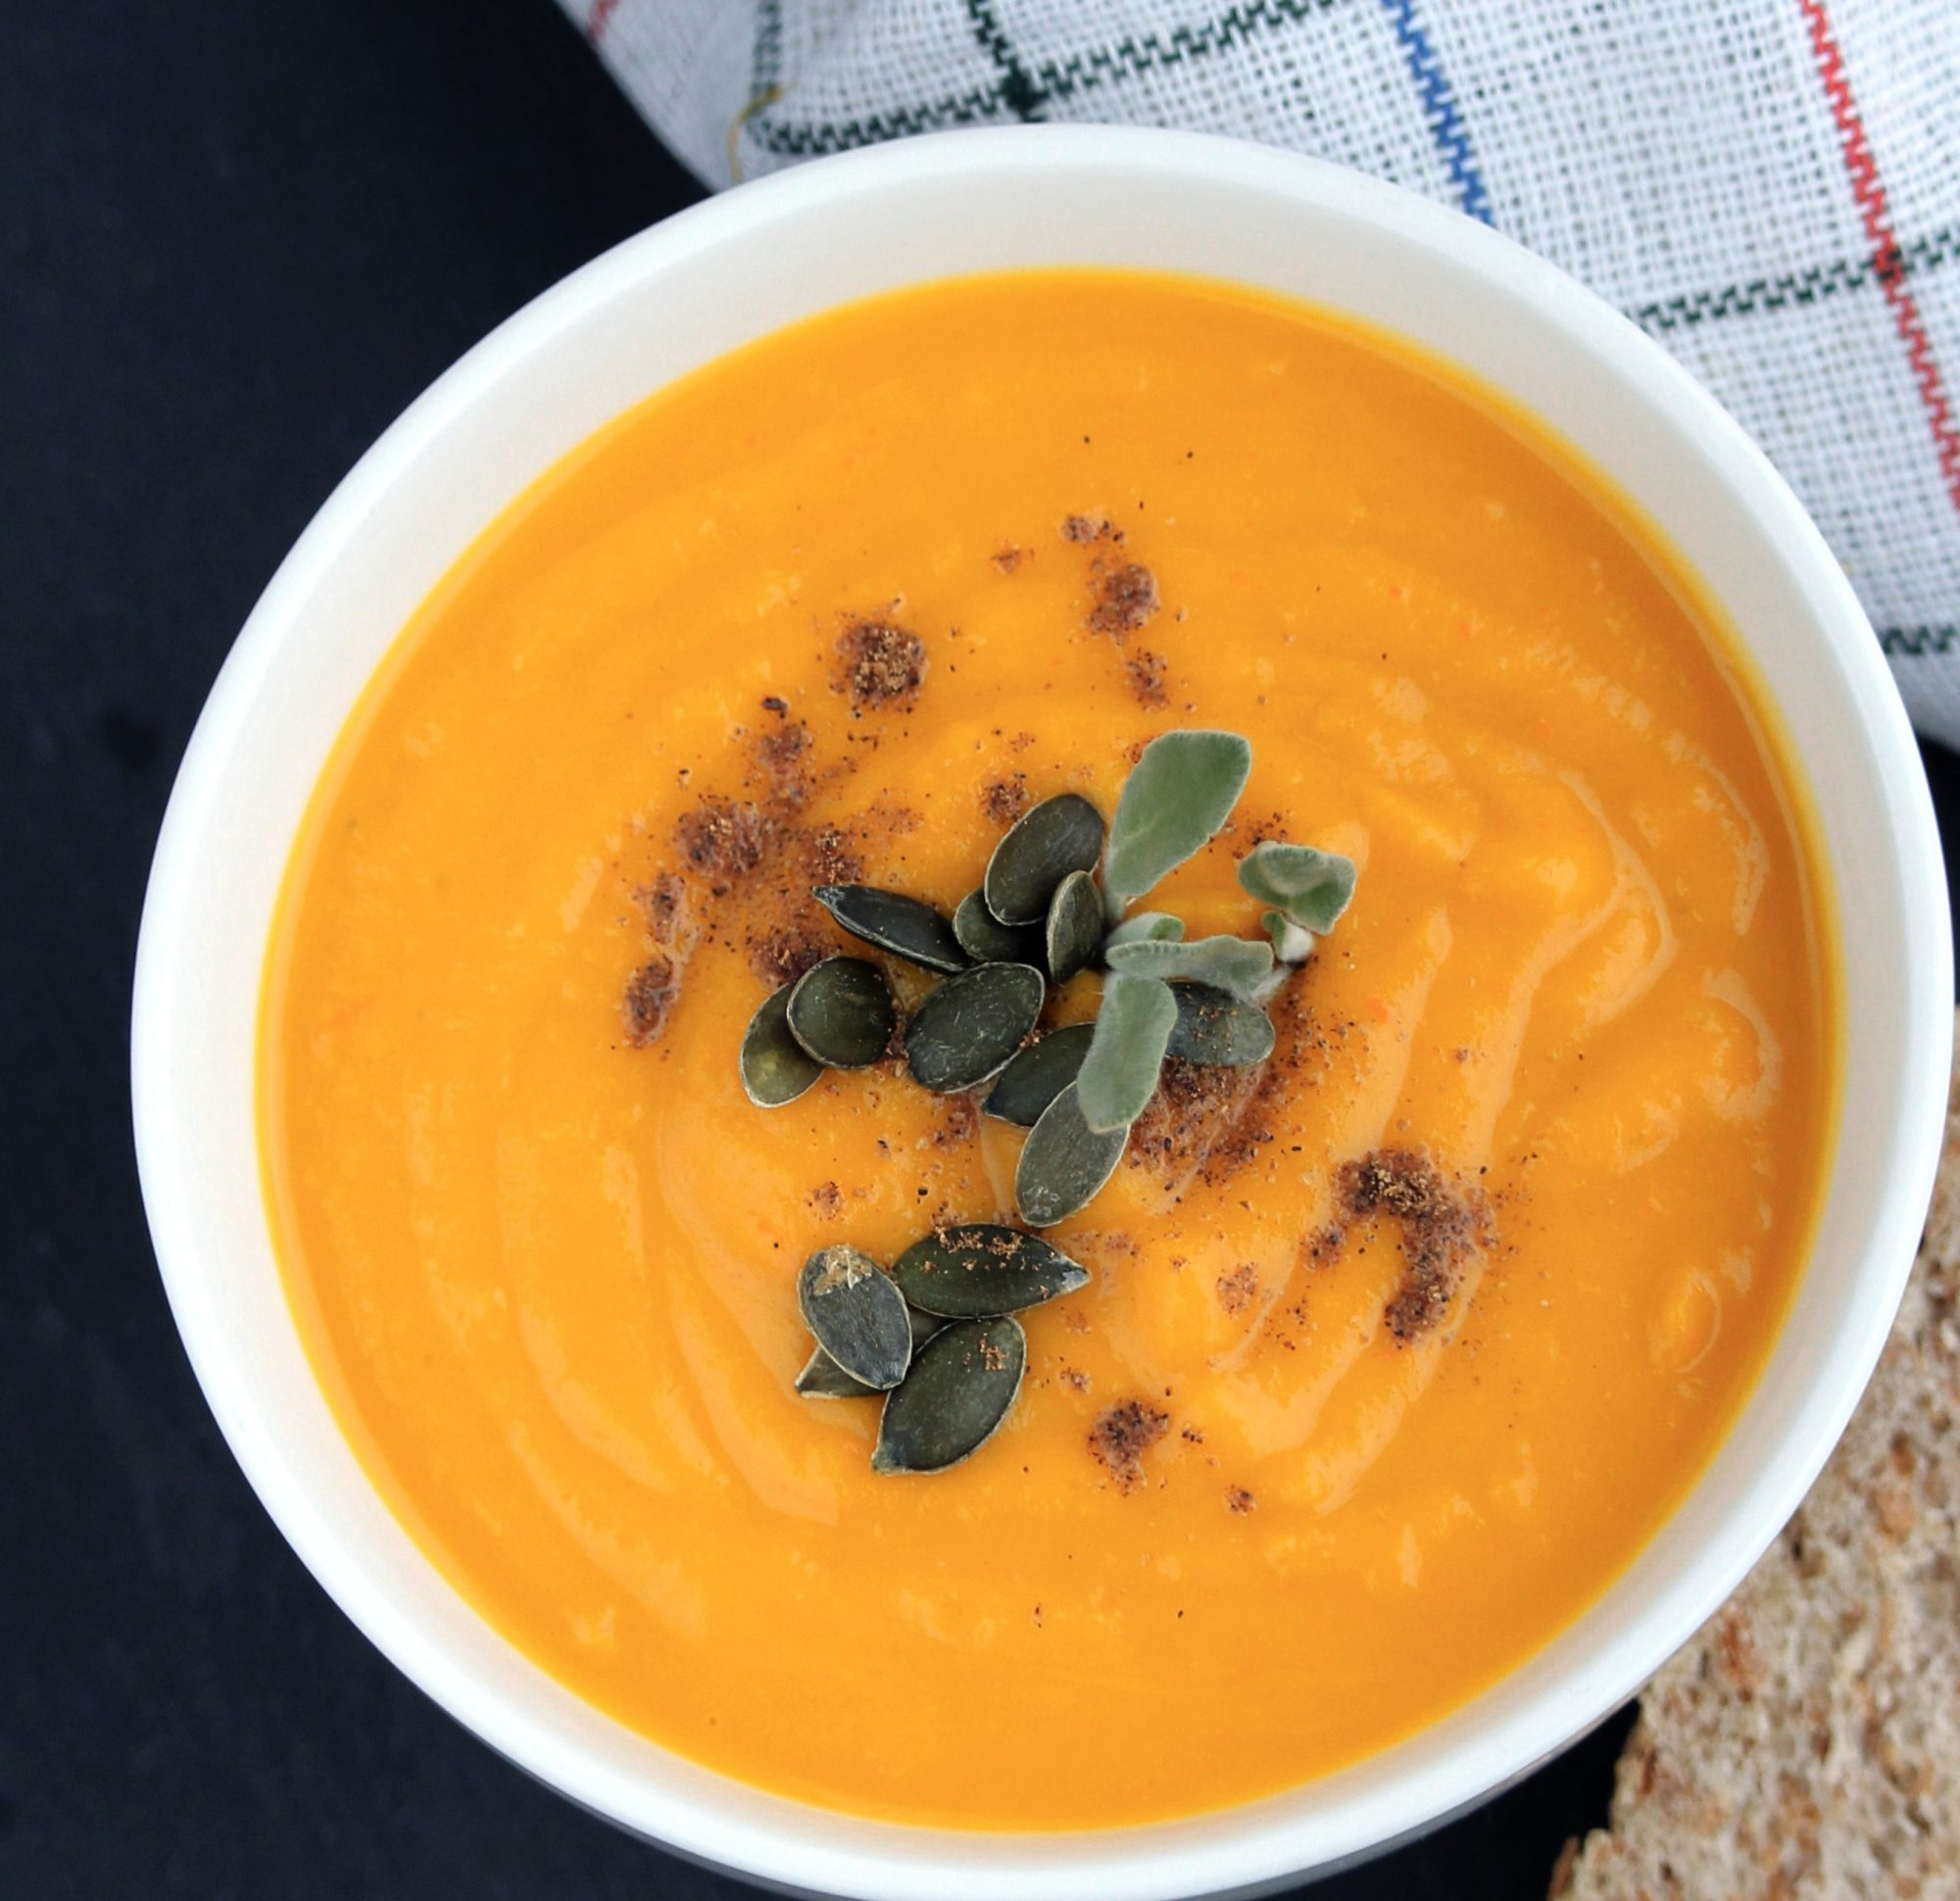 Roasted pumpkin soup in white bowl with pumpkin seeds on top